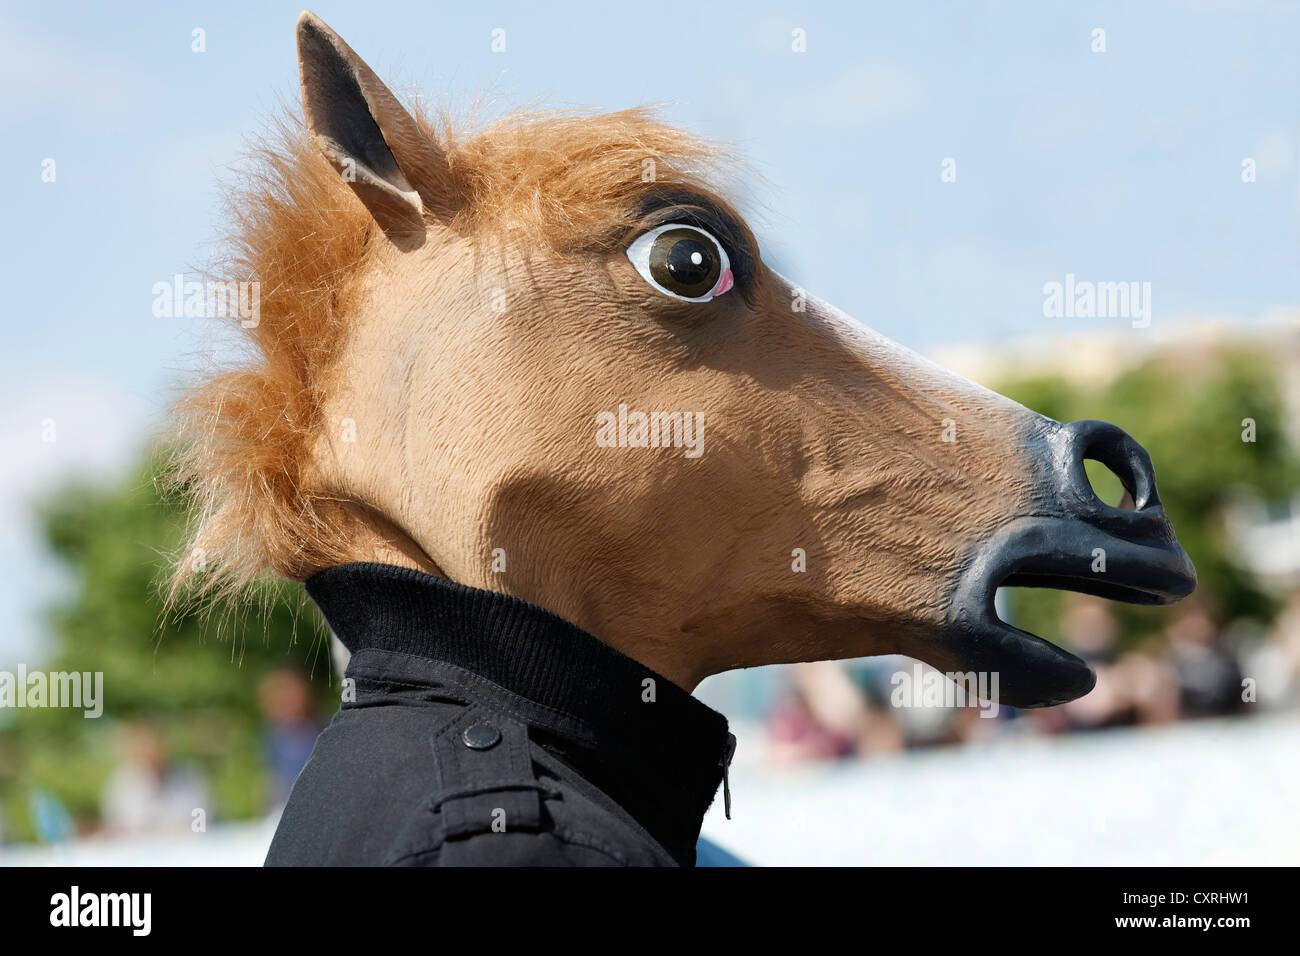 Horse Mask High Resolution Stock Photography And Images Alamy